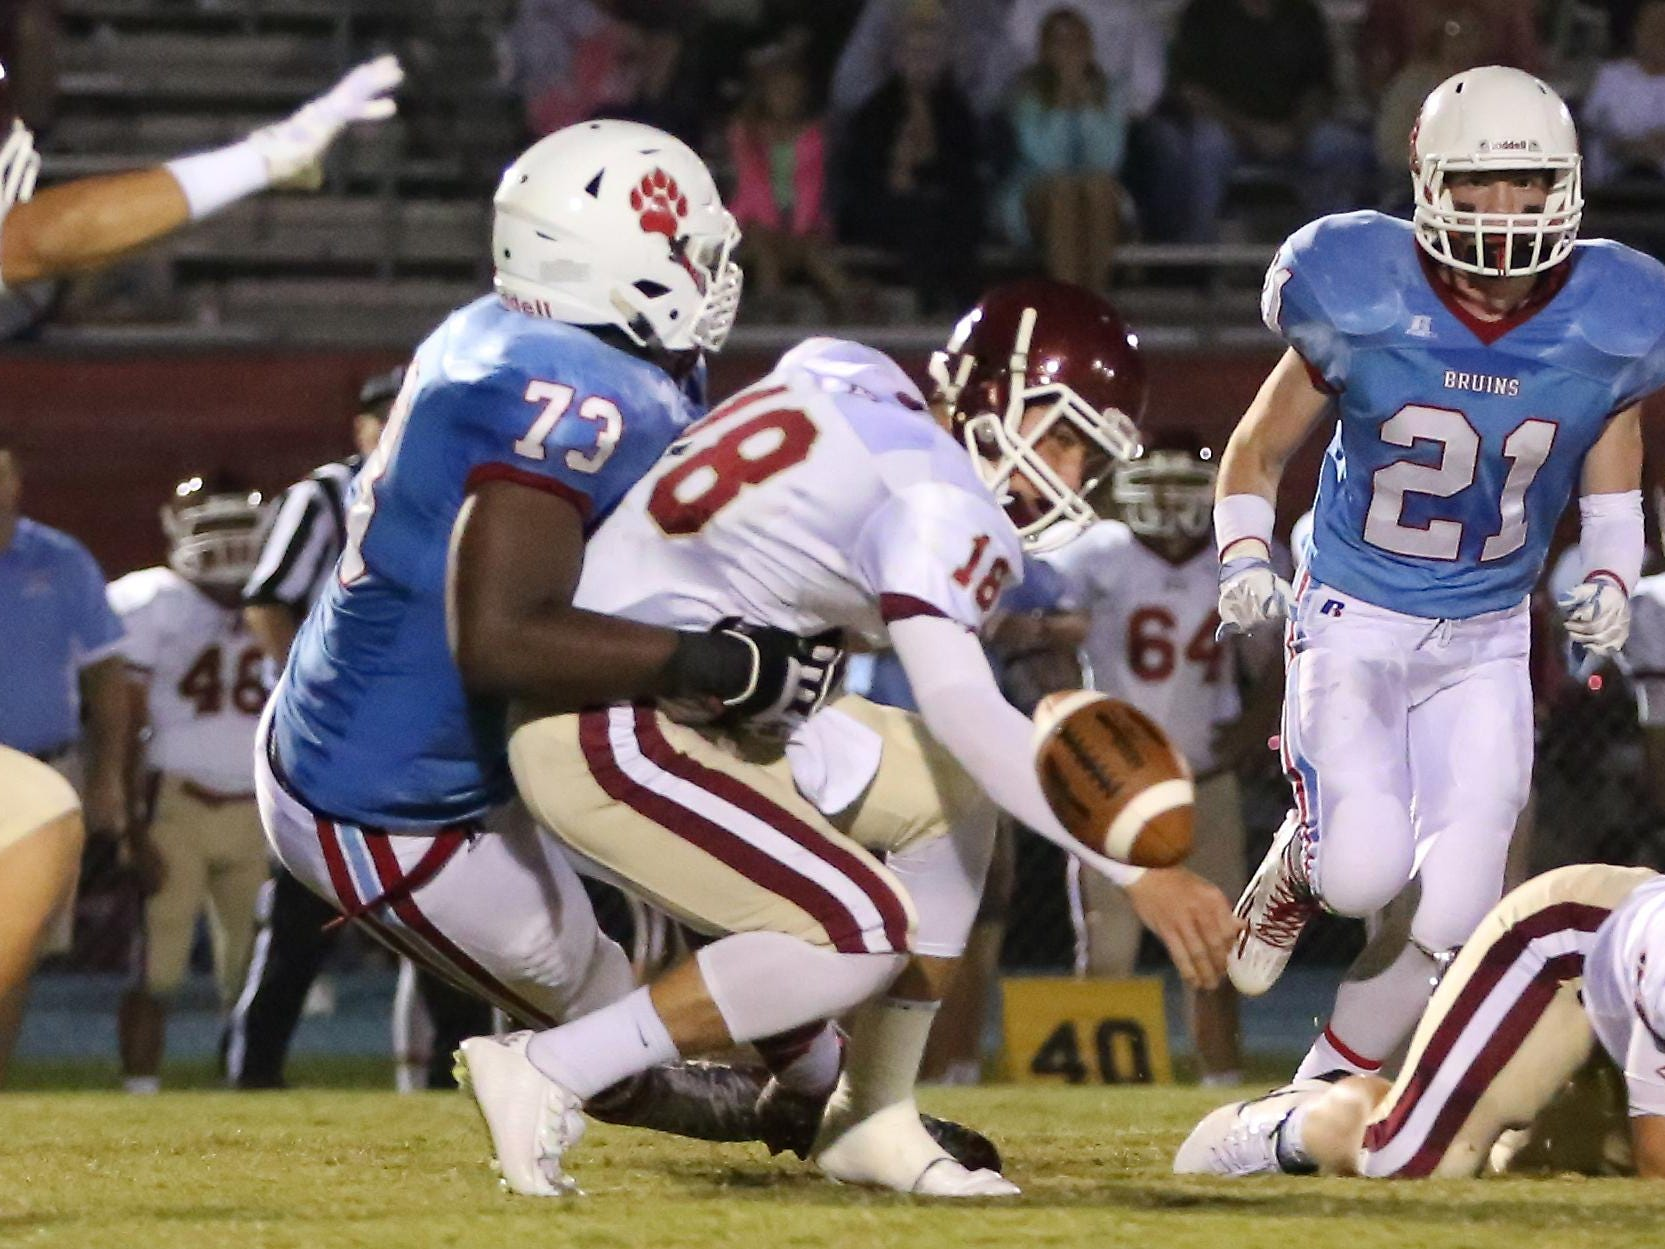 University School of Jackson's Trey Smith forces a quarterback fumble during their game this year against Evangelical Christian School.